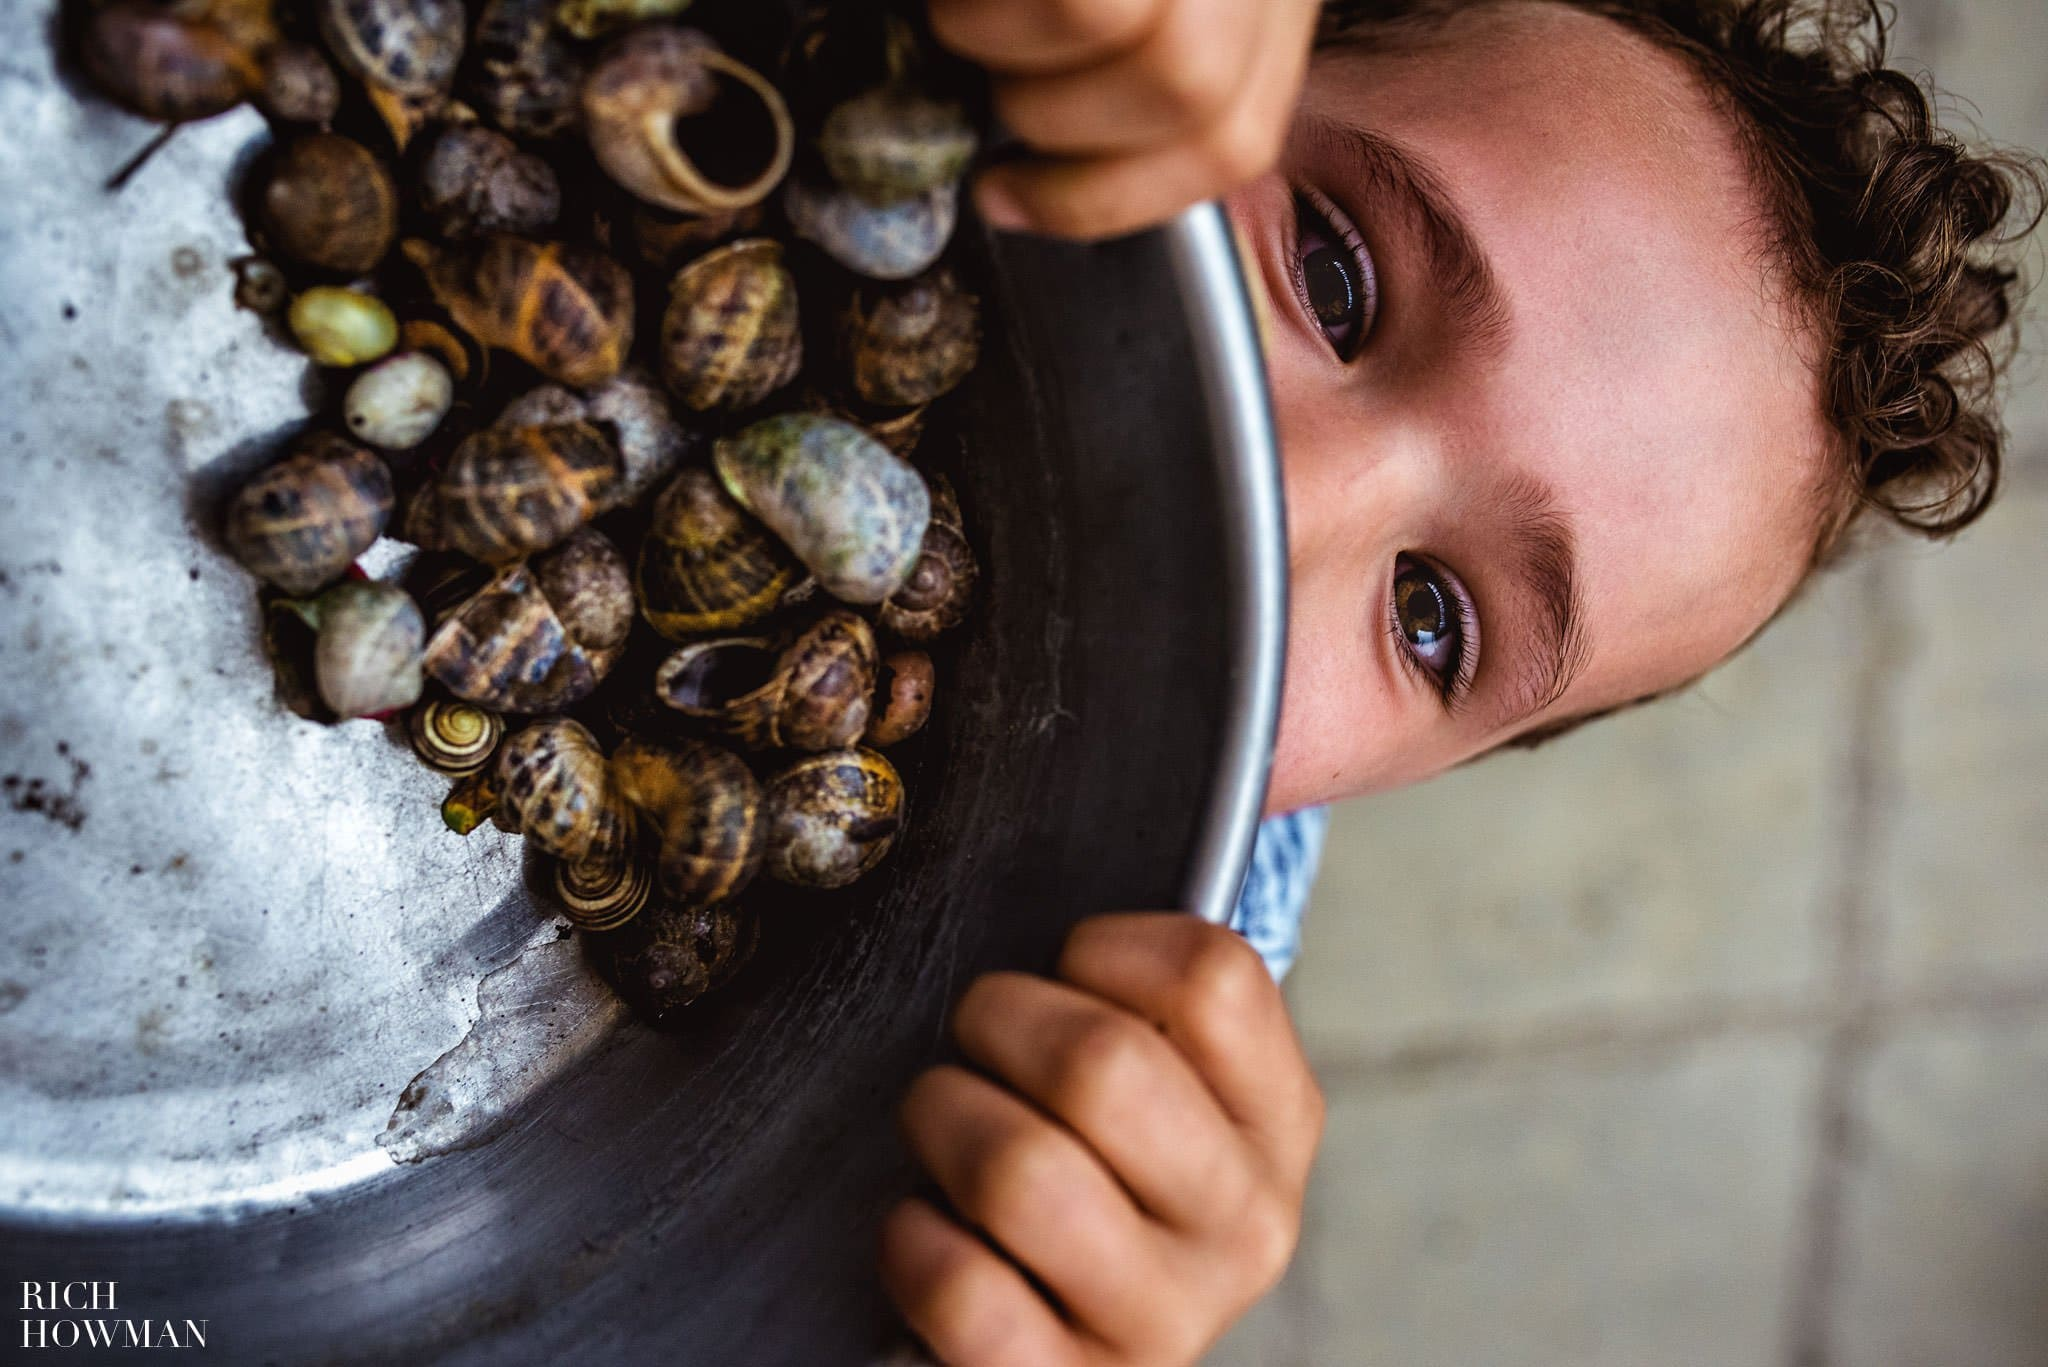 Little boy at a wedding with a bowl full of snails